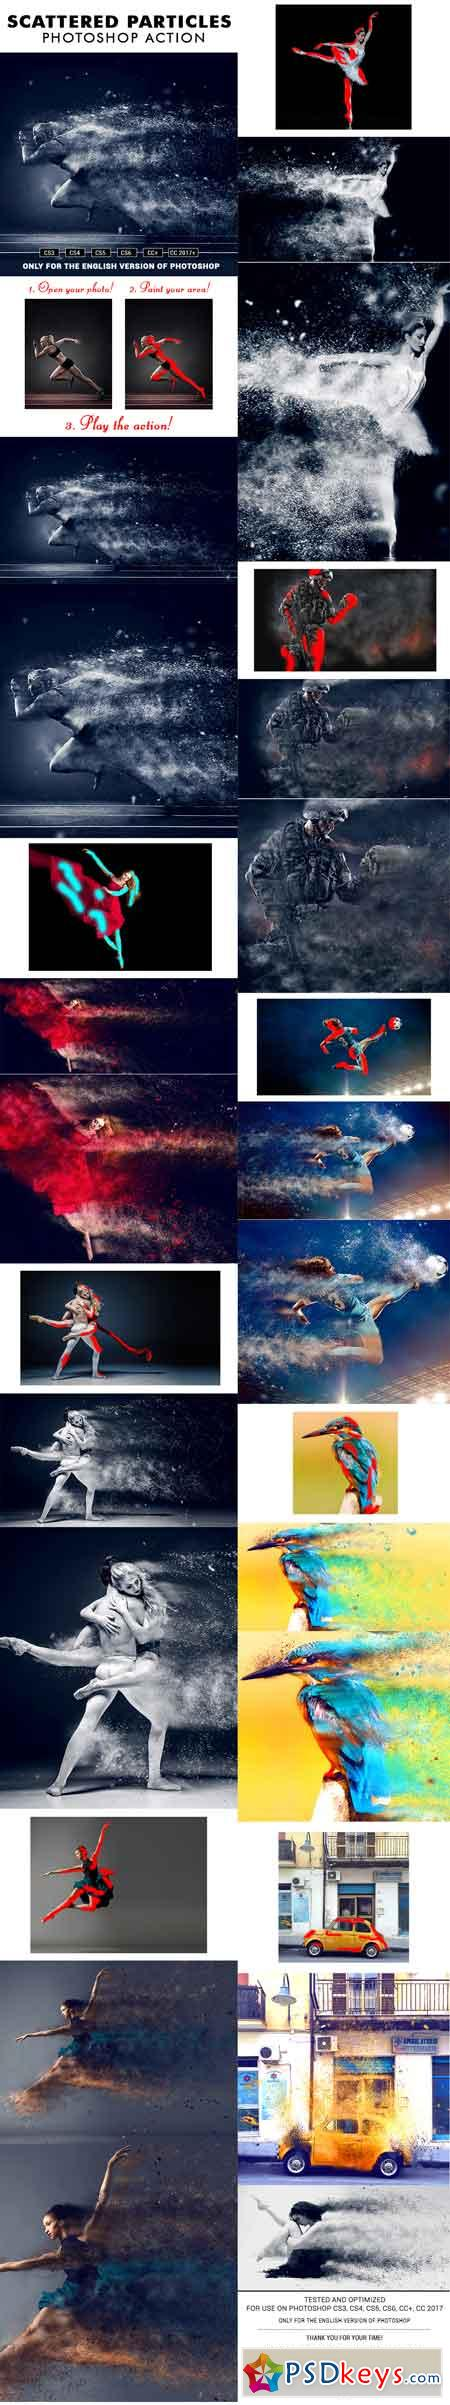 Scattered Particles Photoshop Action 20505451